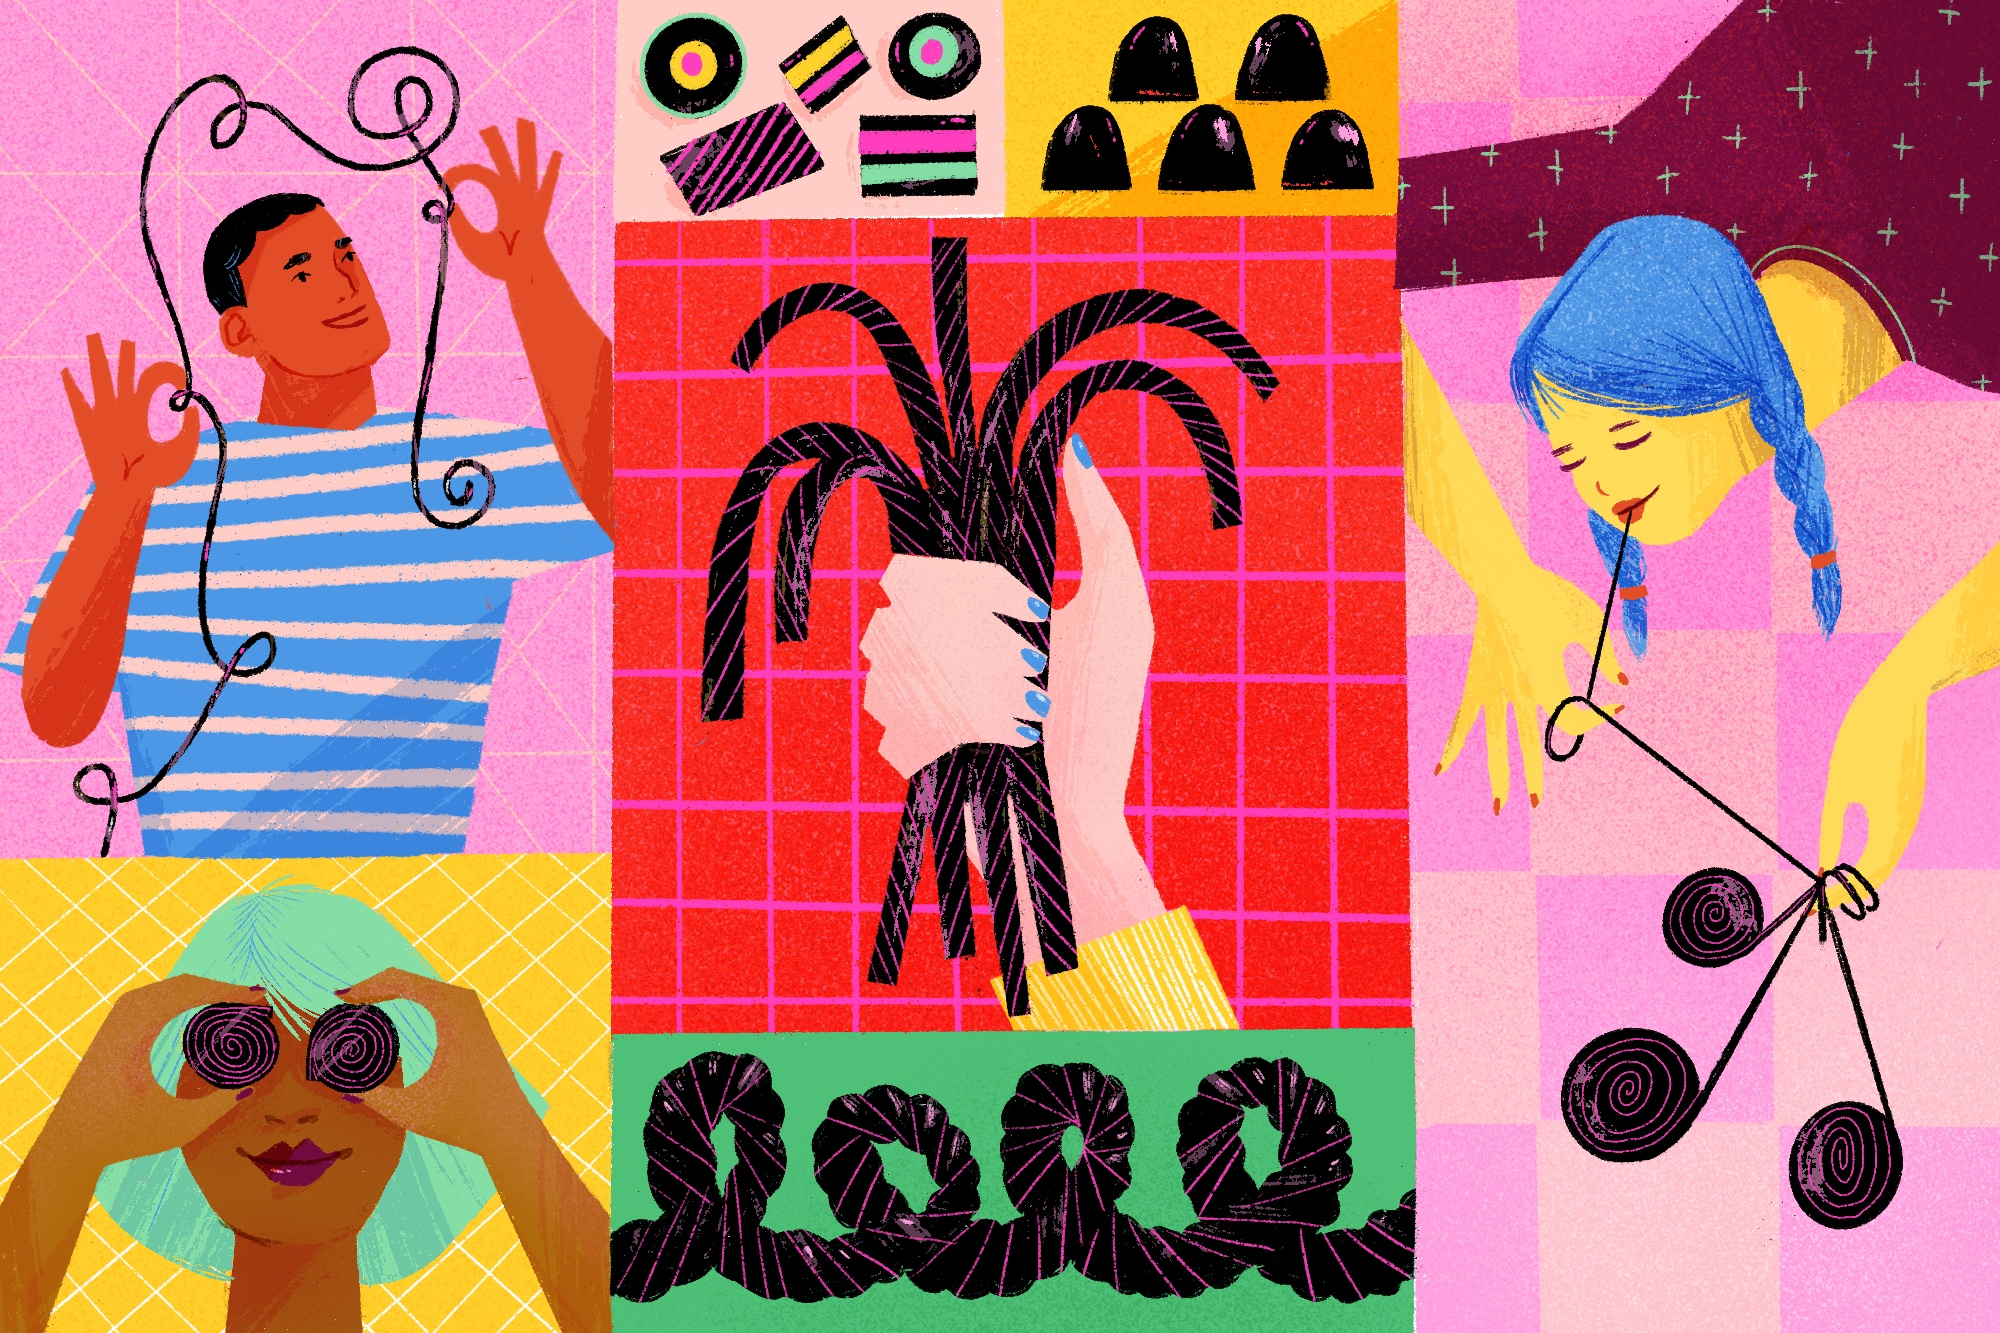 A colorful illustration showing black licorice in different forms.